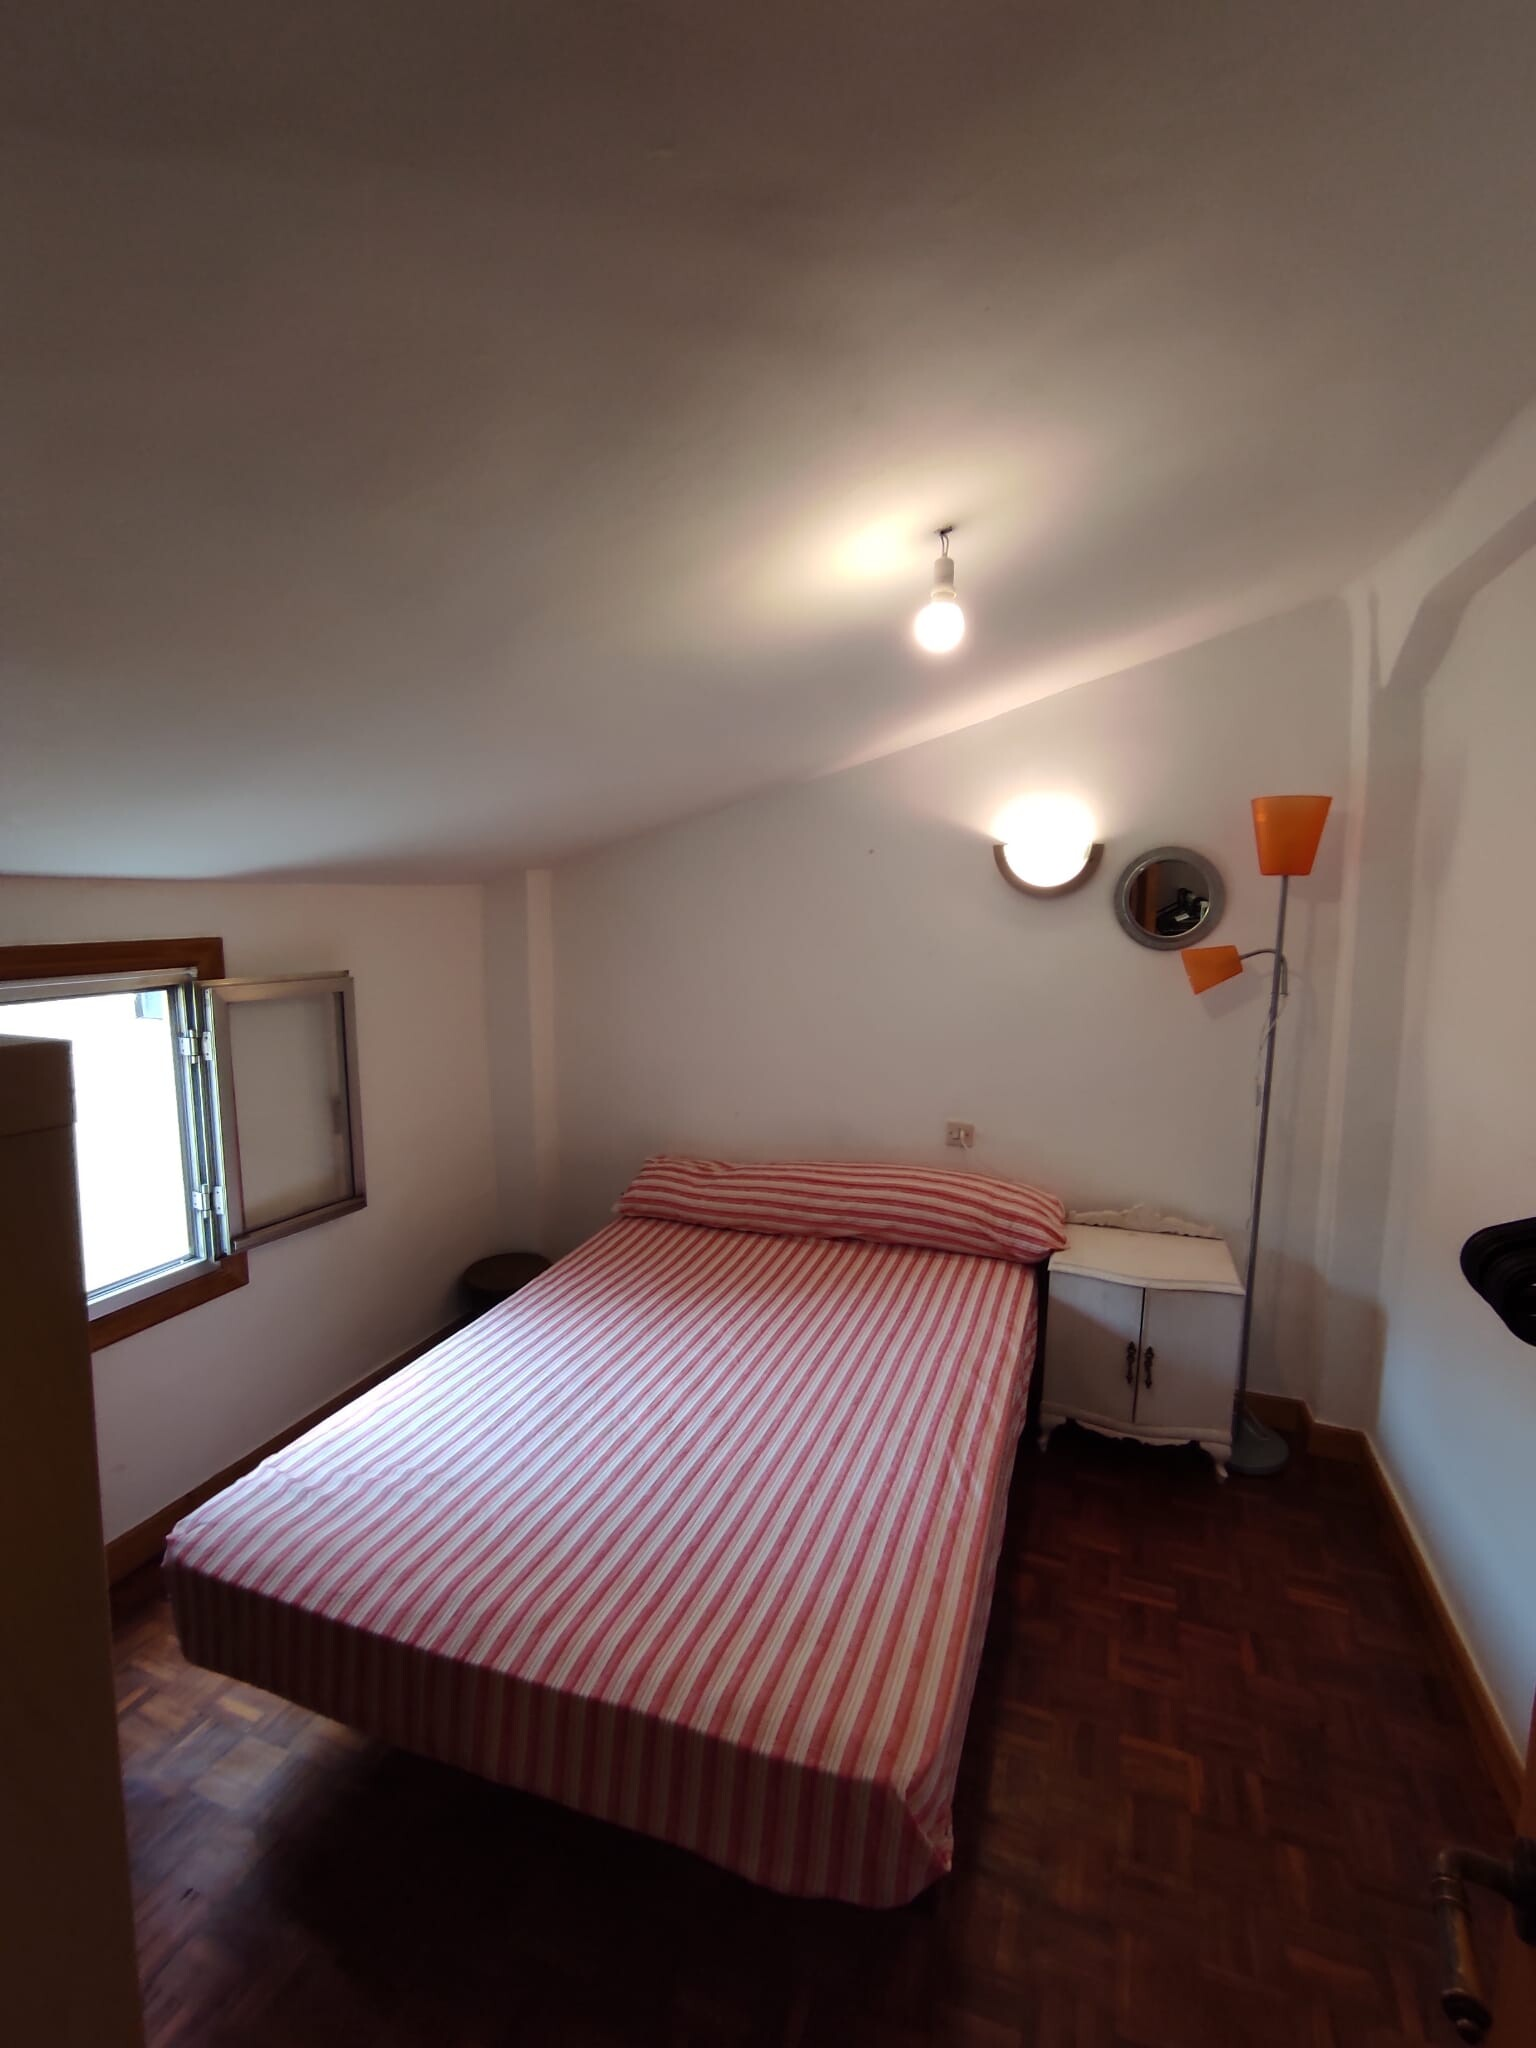 Room with double bed, autonomy area,